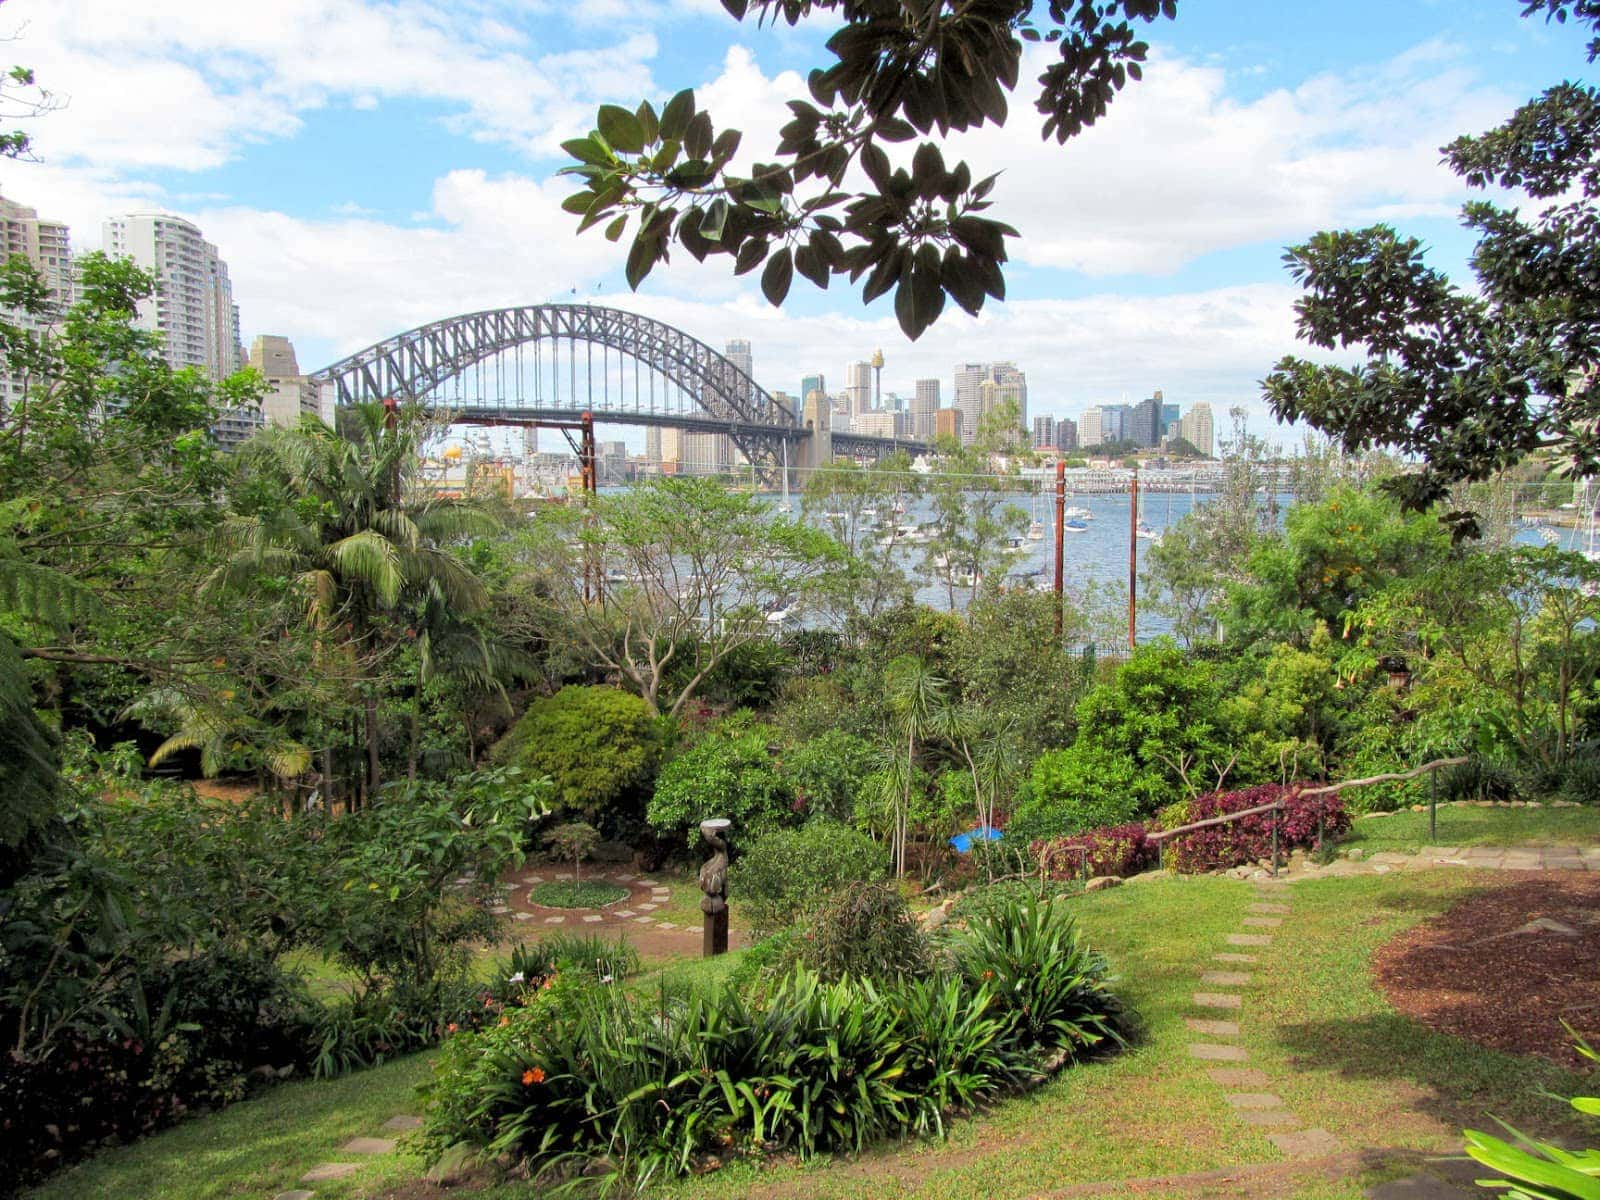 secret garden rose bay sydney - photo#6